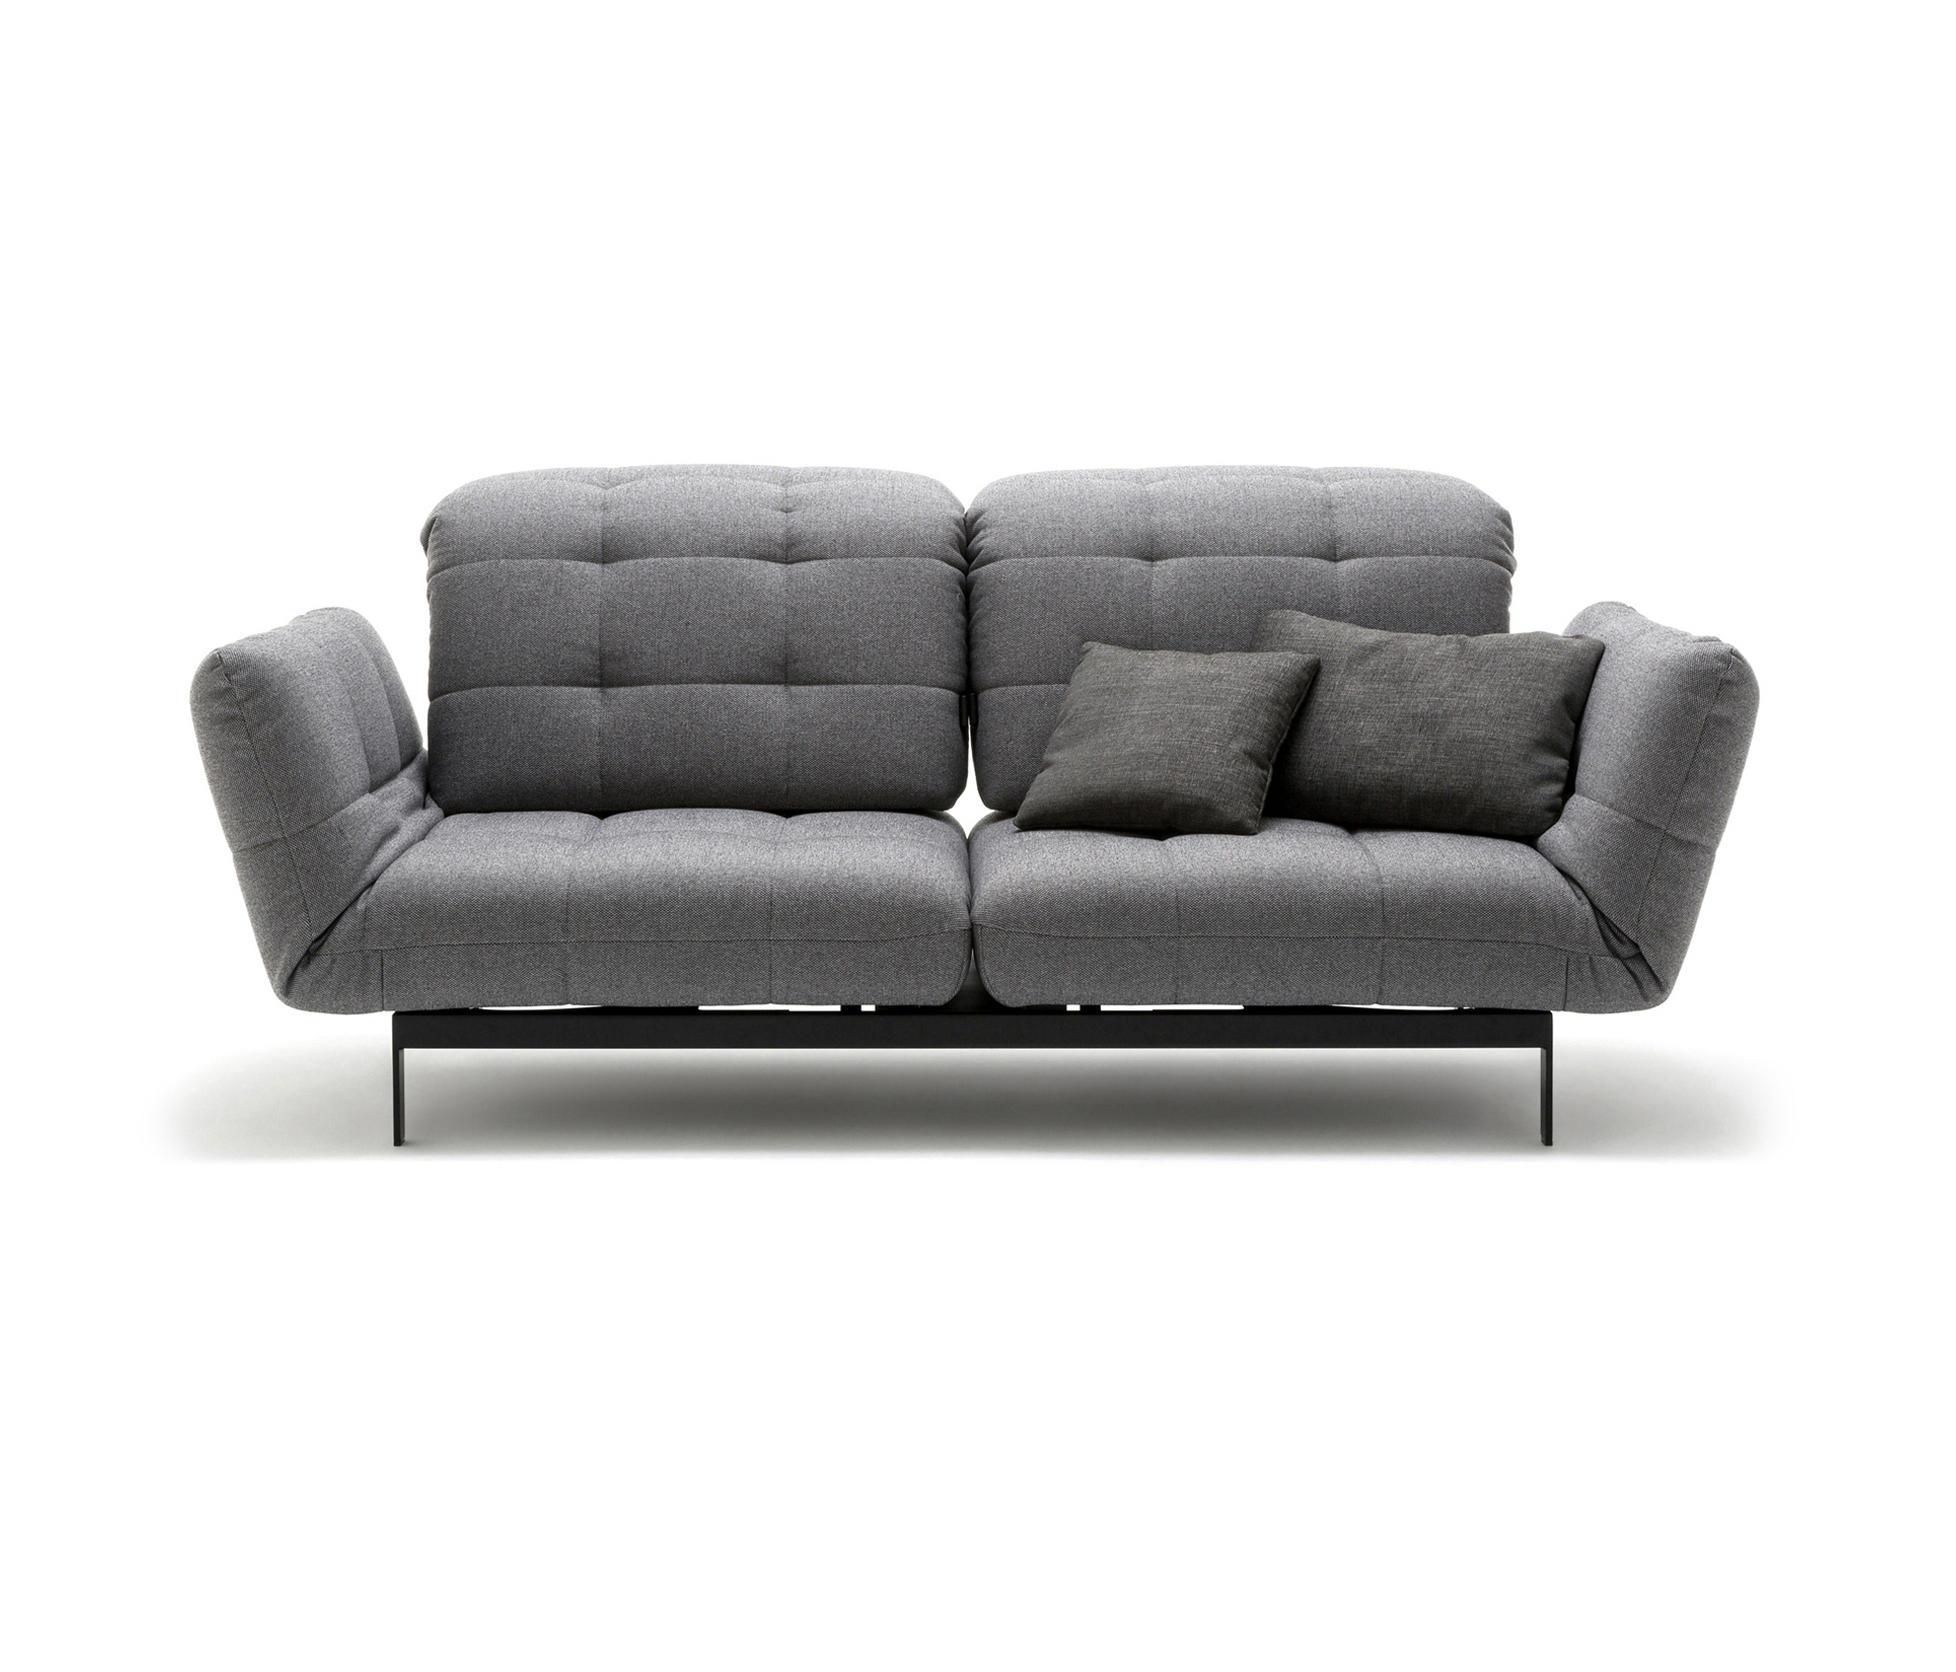 Rolf benz sofa bed for Couch benz